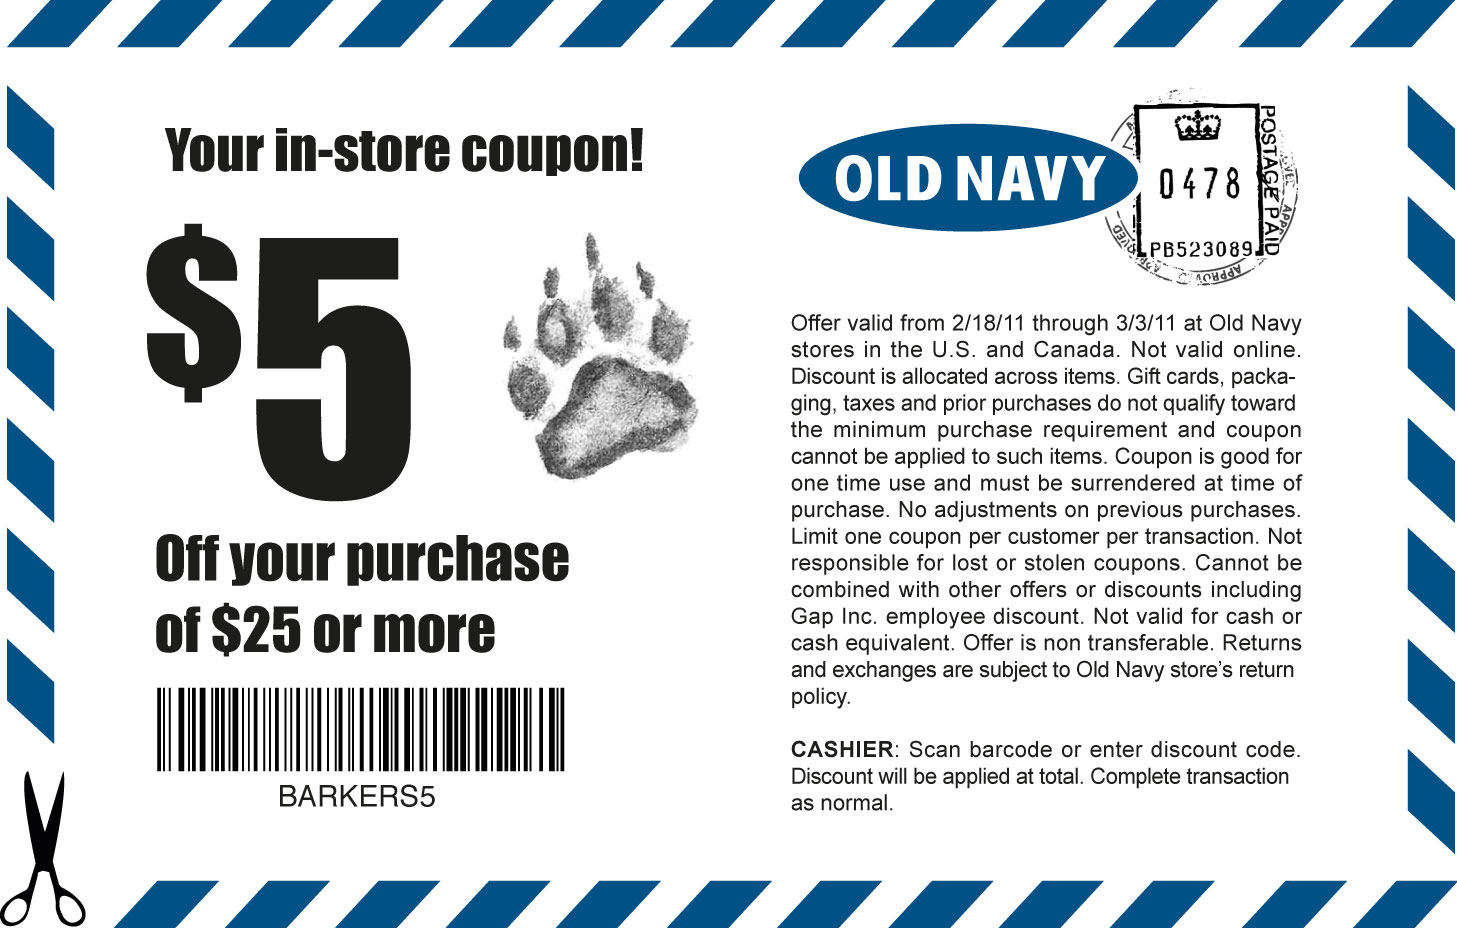 Old Navy Coupon - Cumming Local | Things To Do in Cumming GA Forsyth ...